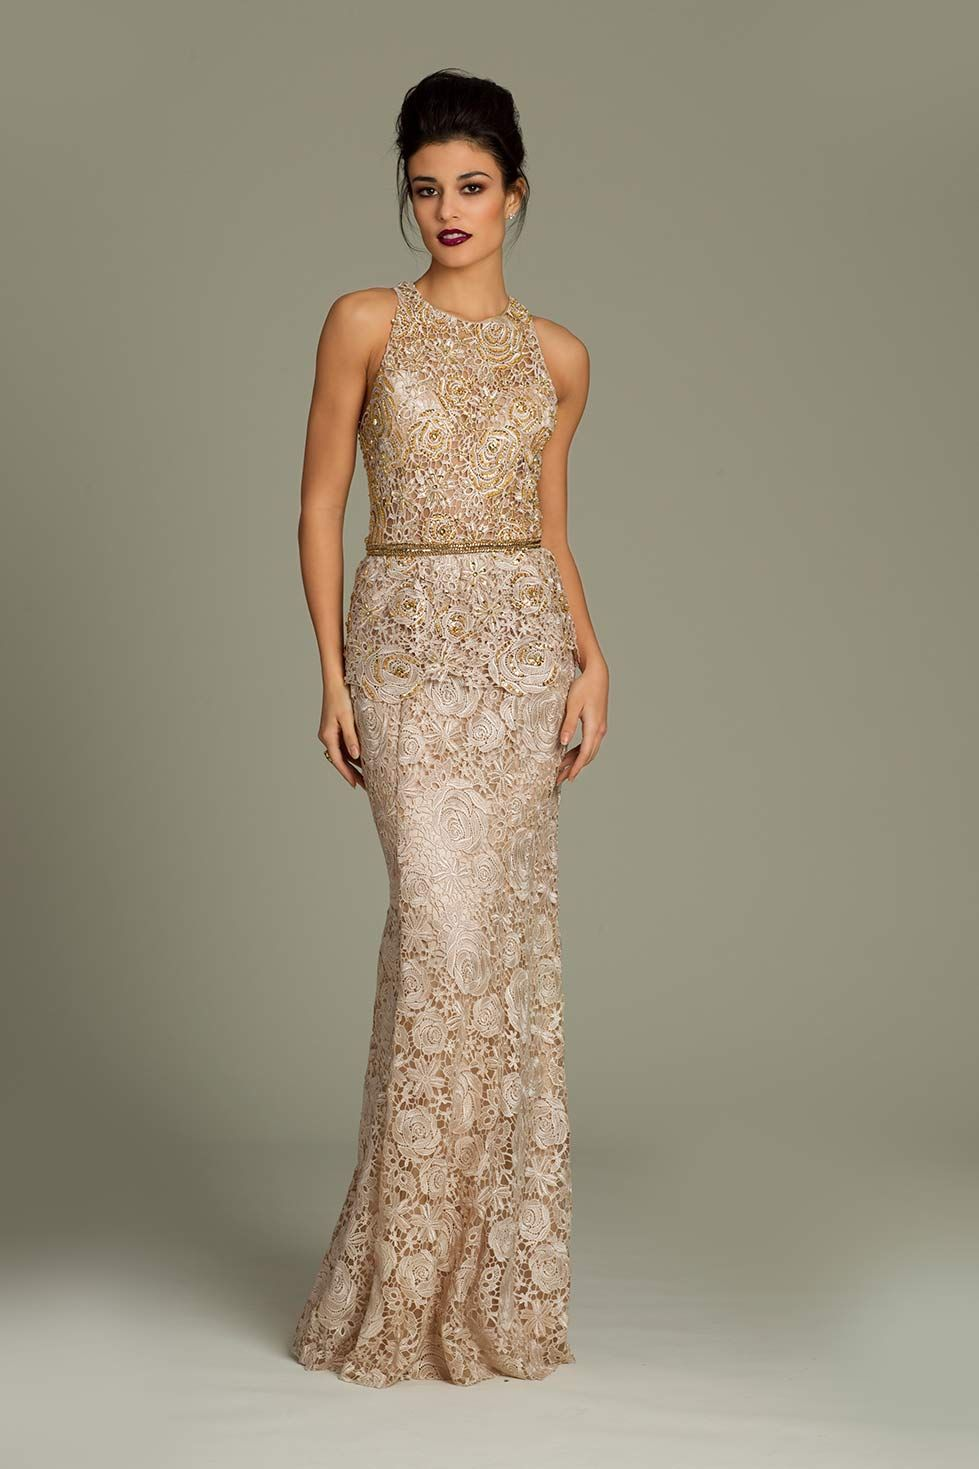 2019 year style- Wedding Jovani dresses with inviting beautiful pictures